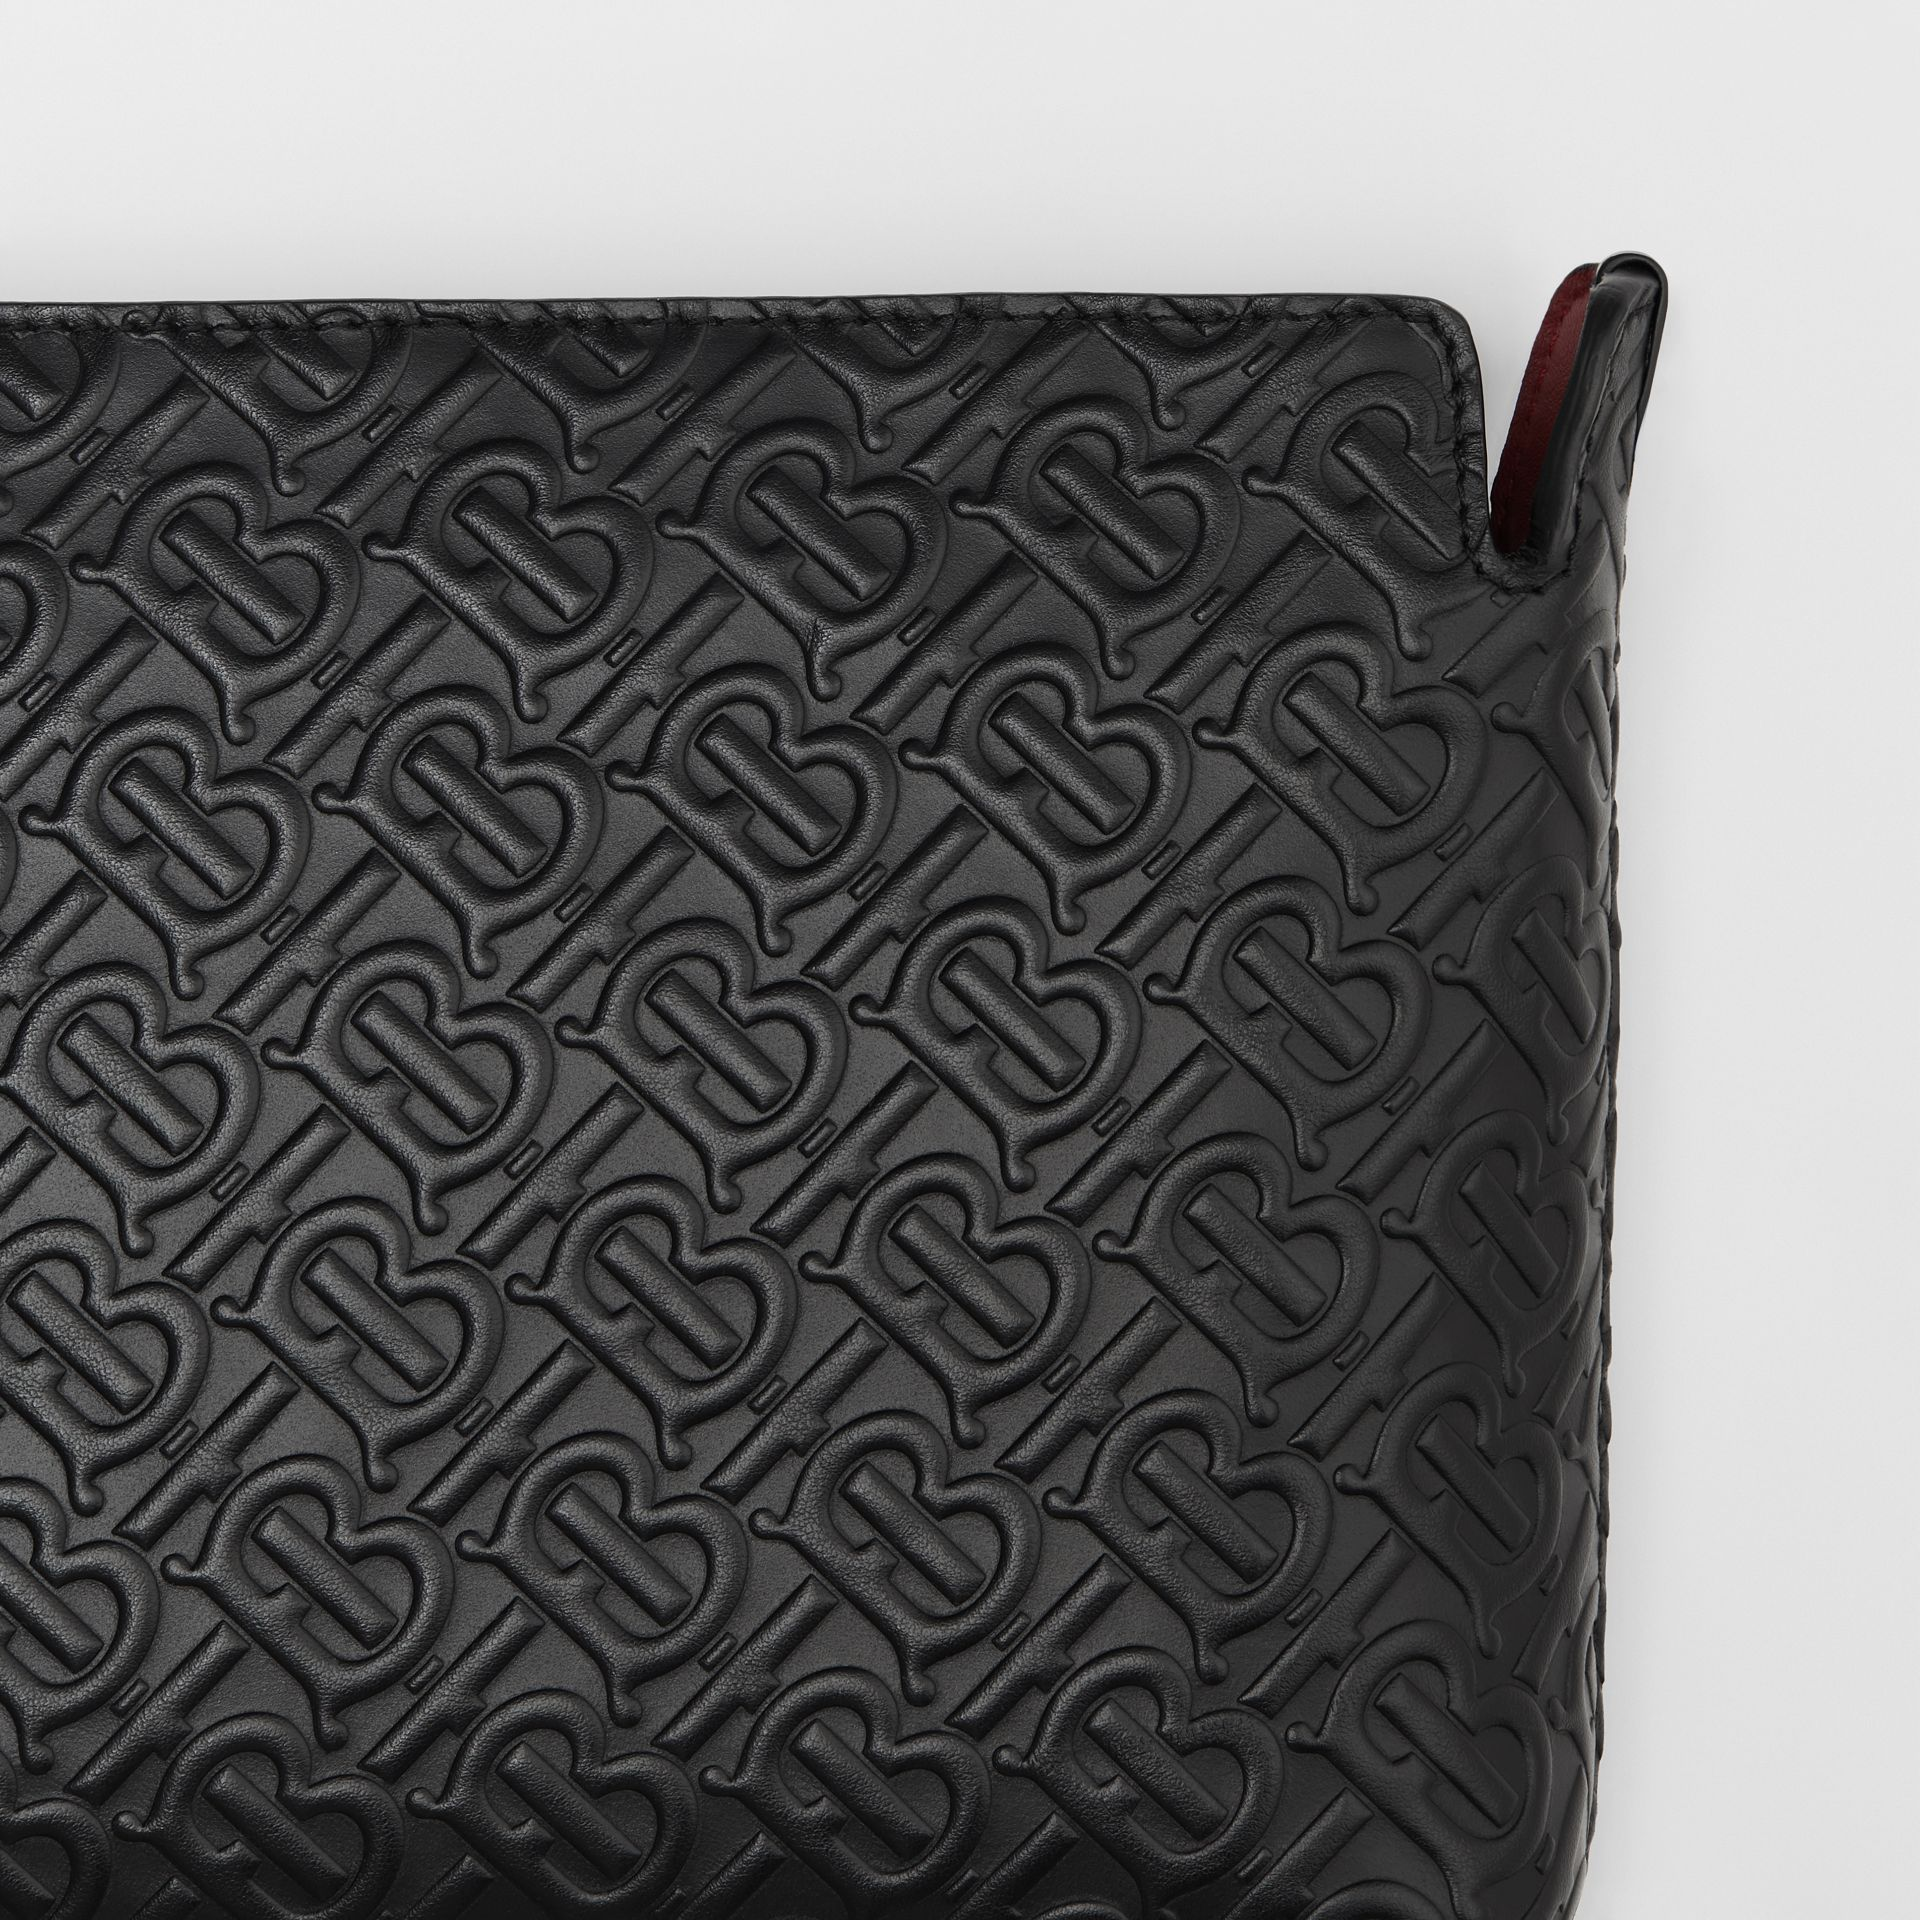 Medium Monogram Leather Clutch in Black - Women | Burberry United States - gallery image 1